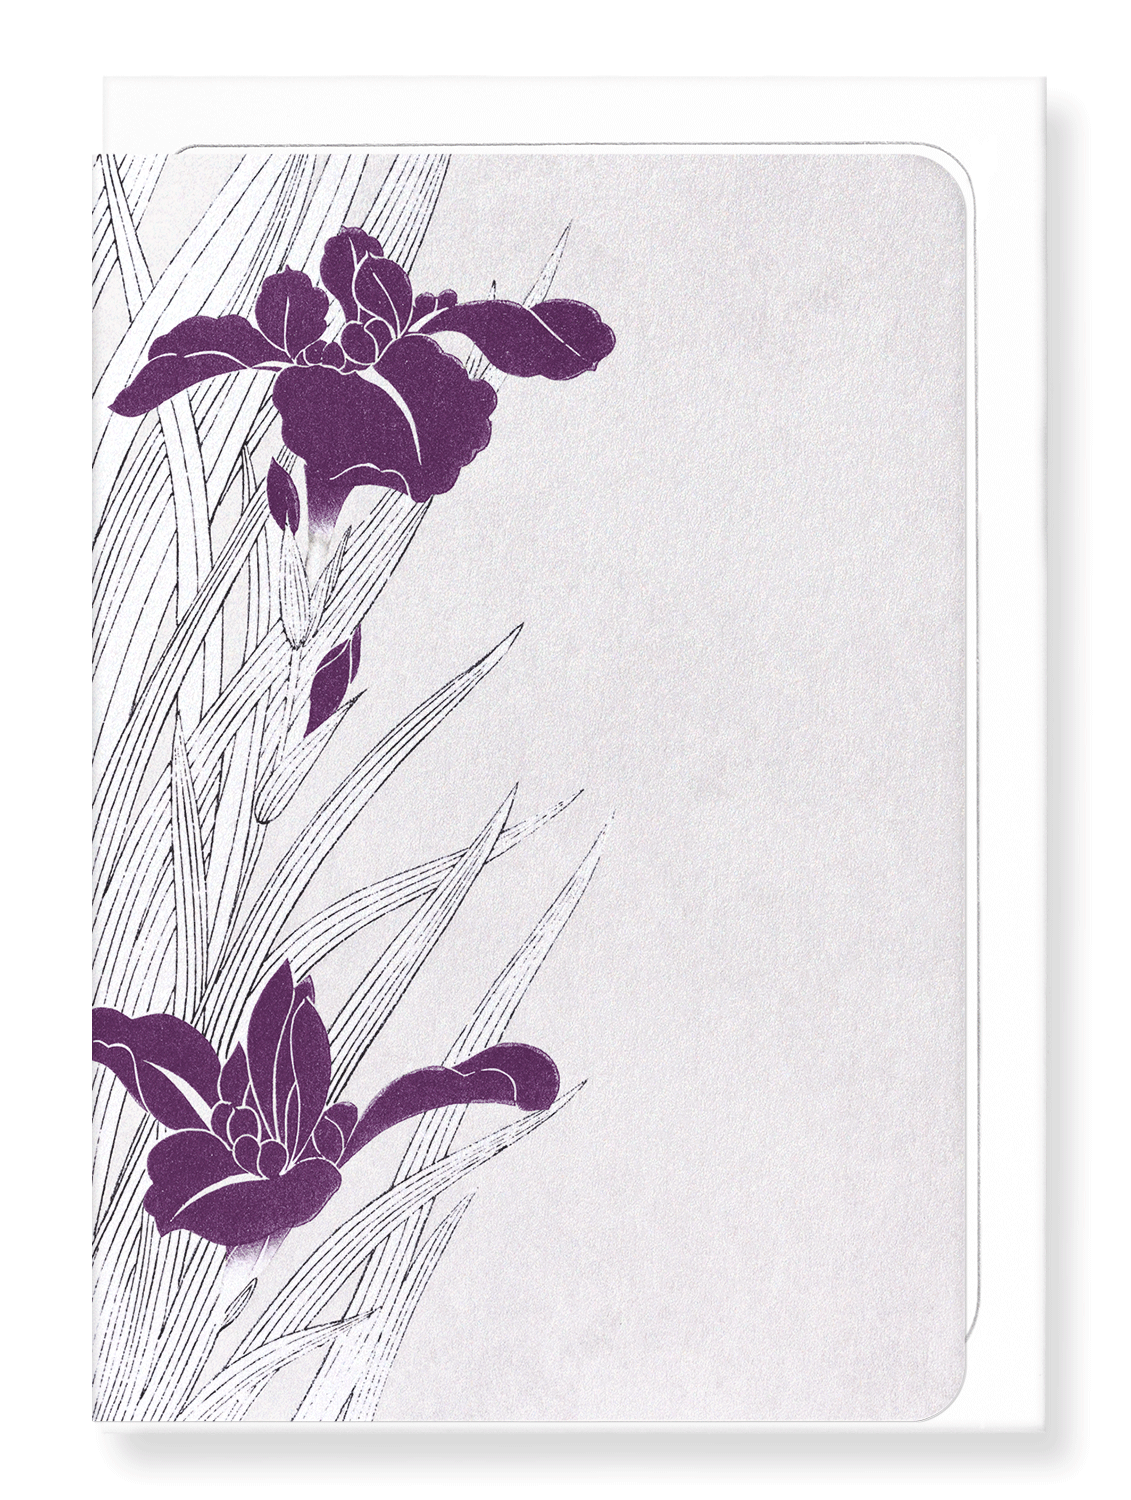 Ezen Designs - Purple iris design - Greeting Card - Front